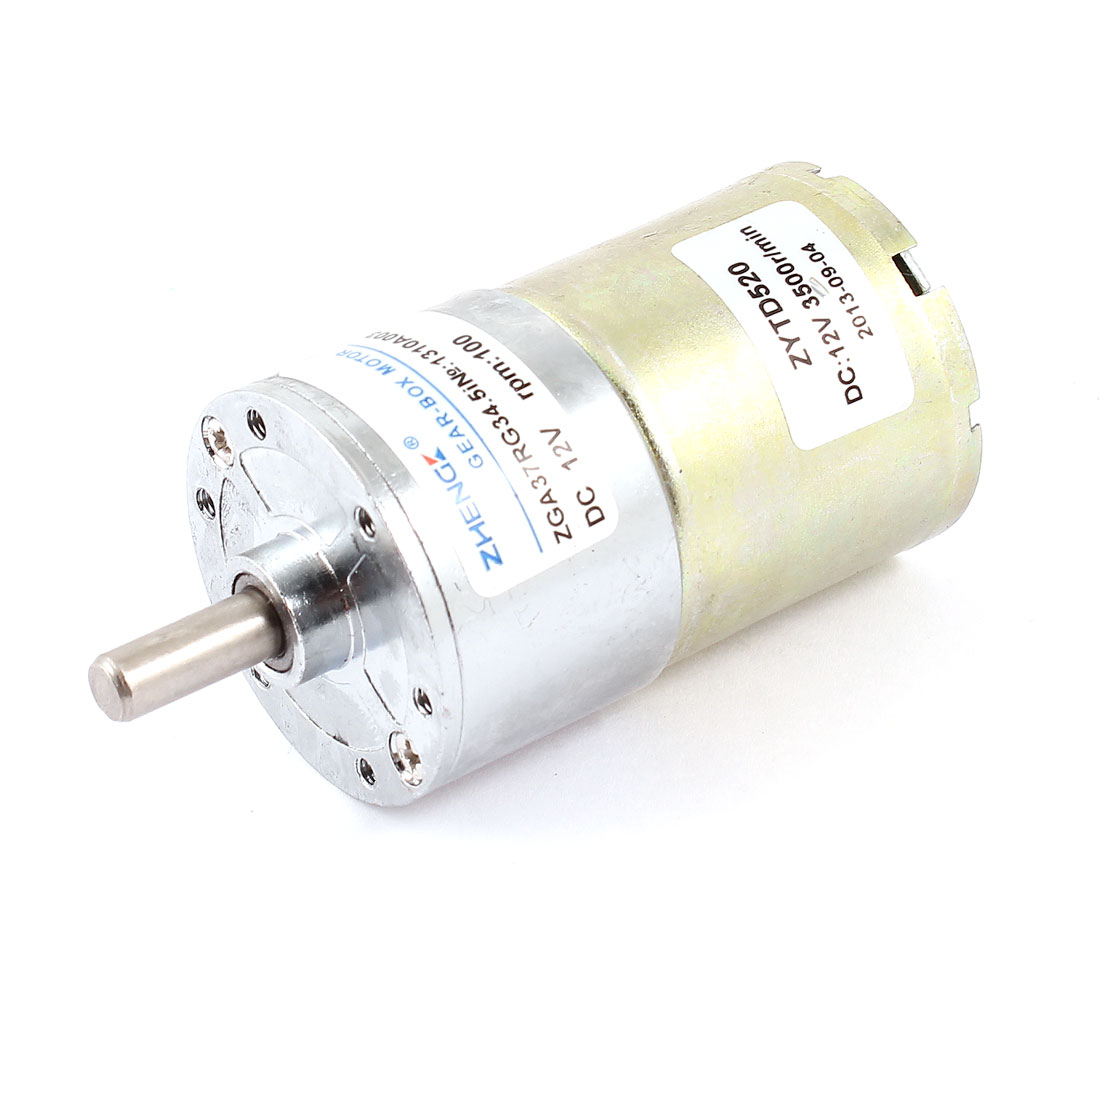 DC 12V 3500RPM 6mm Shaft Dia Speed Reduce Magnetic Electric Geared Box Motor